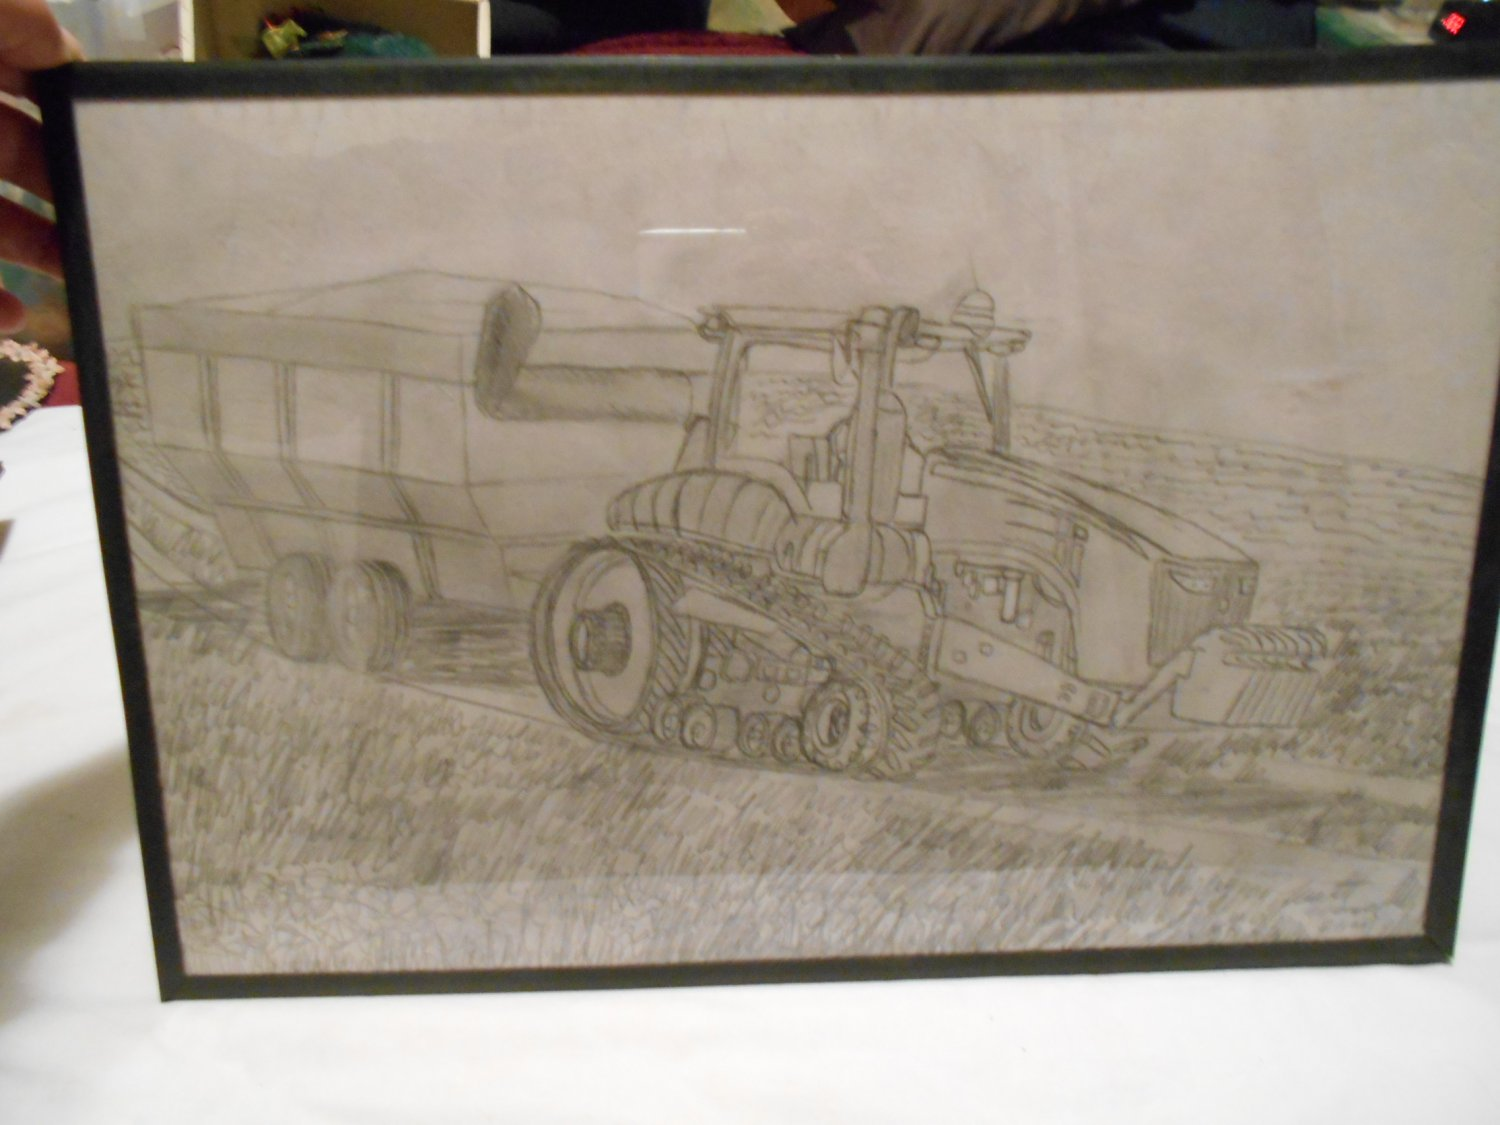 Original Pencil Hand Drawing Tractor and Spreader in Field by Local WV Artist Matt Wenzel